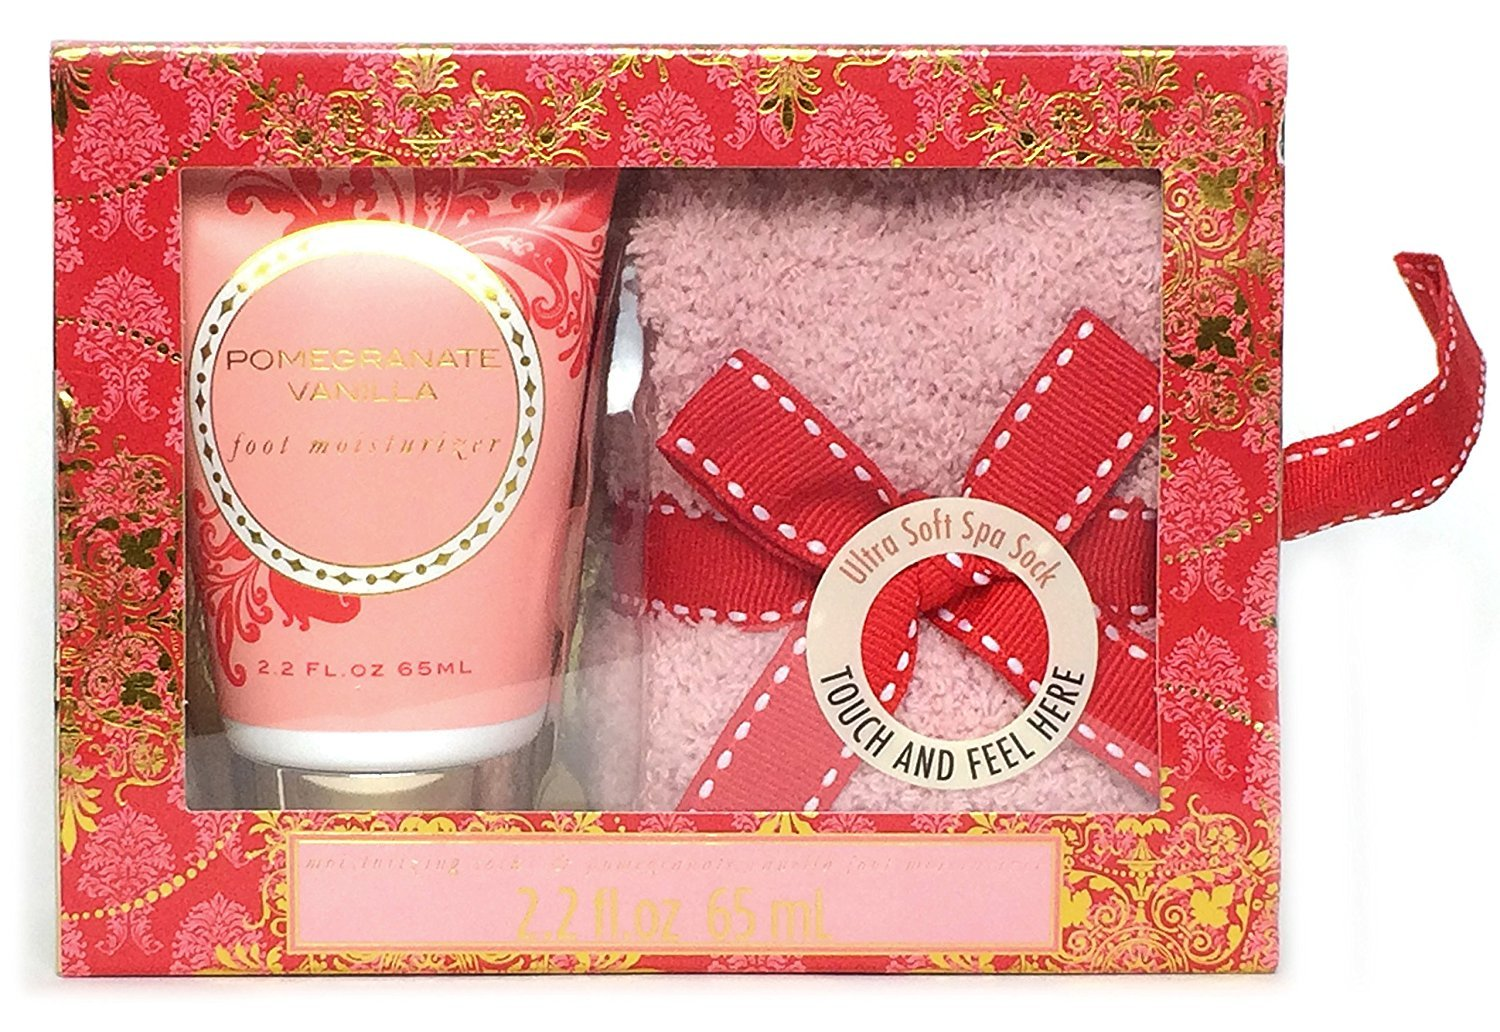 Cozy Sock and Lotion Gift Box Sets (Pomegranate Vanilla) GetSet2Save